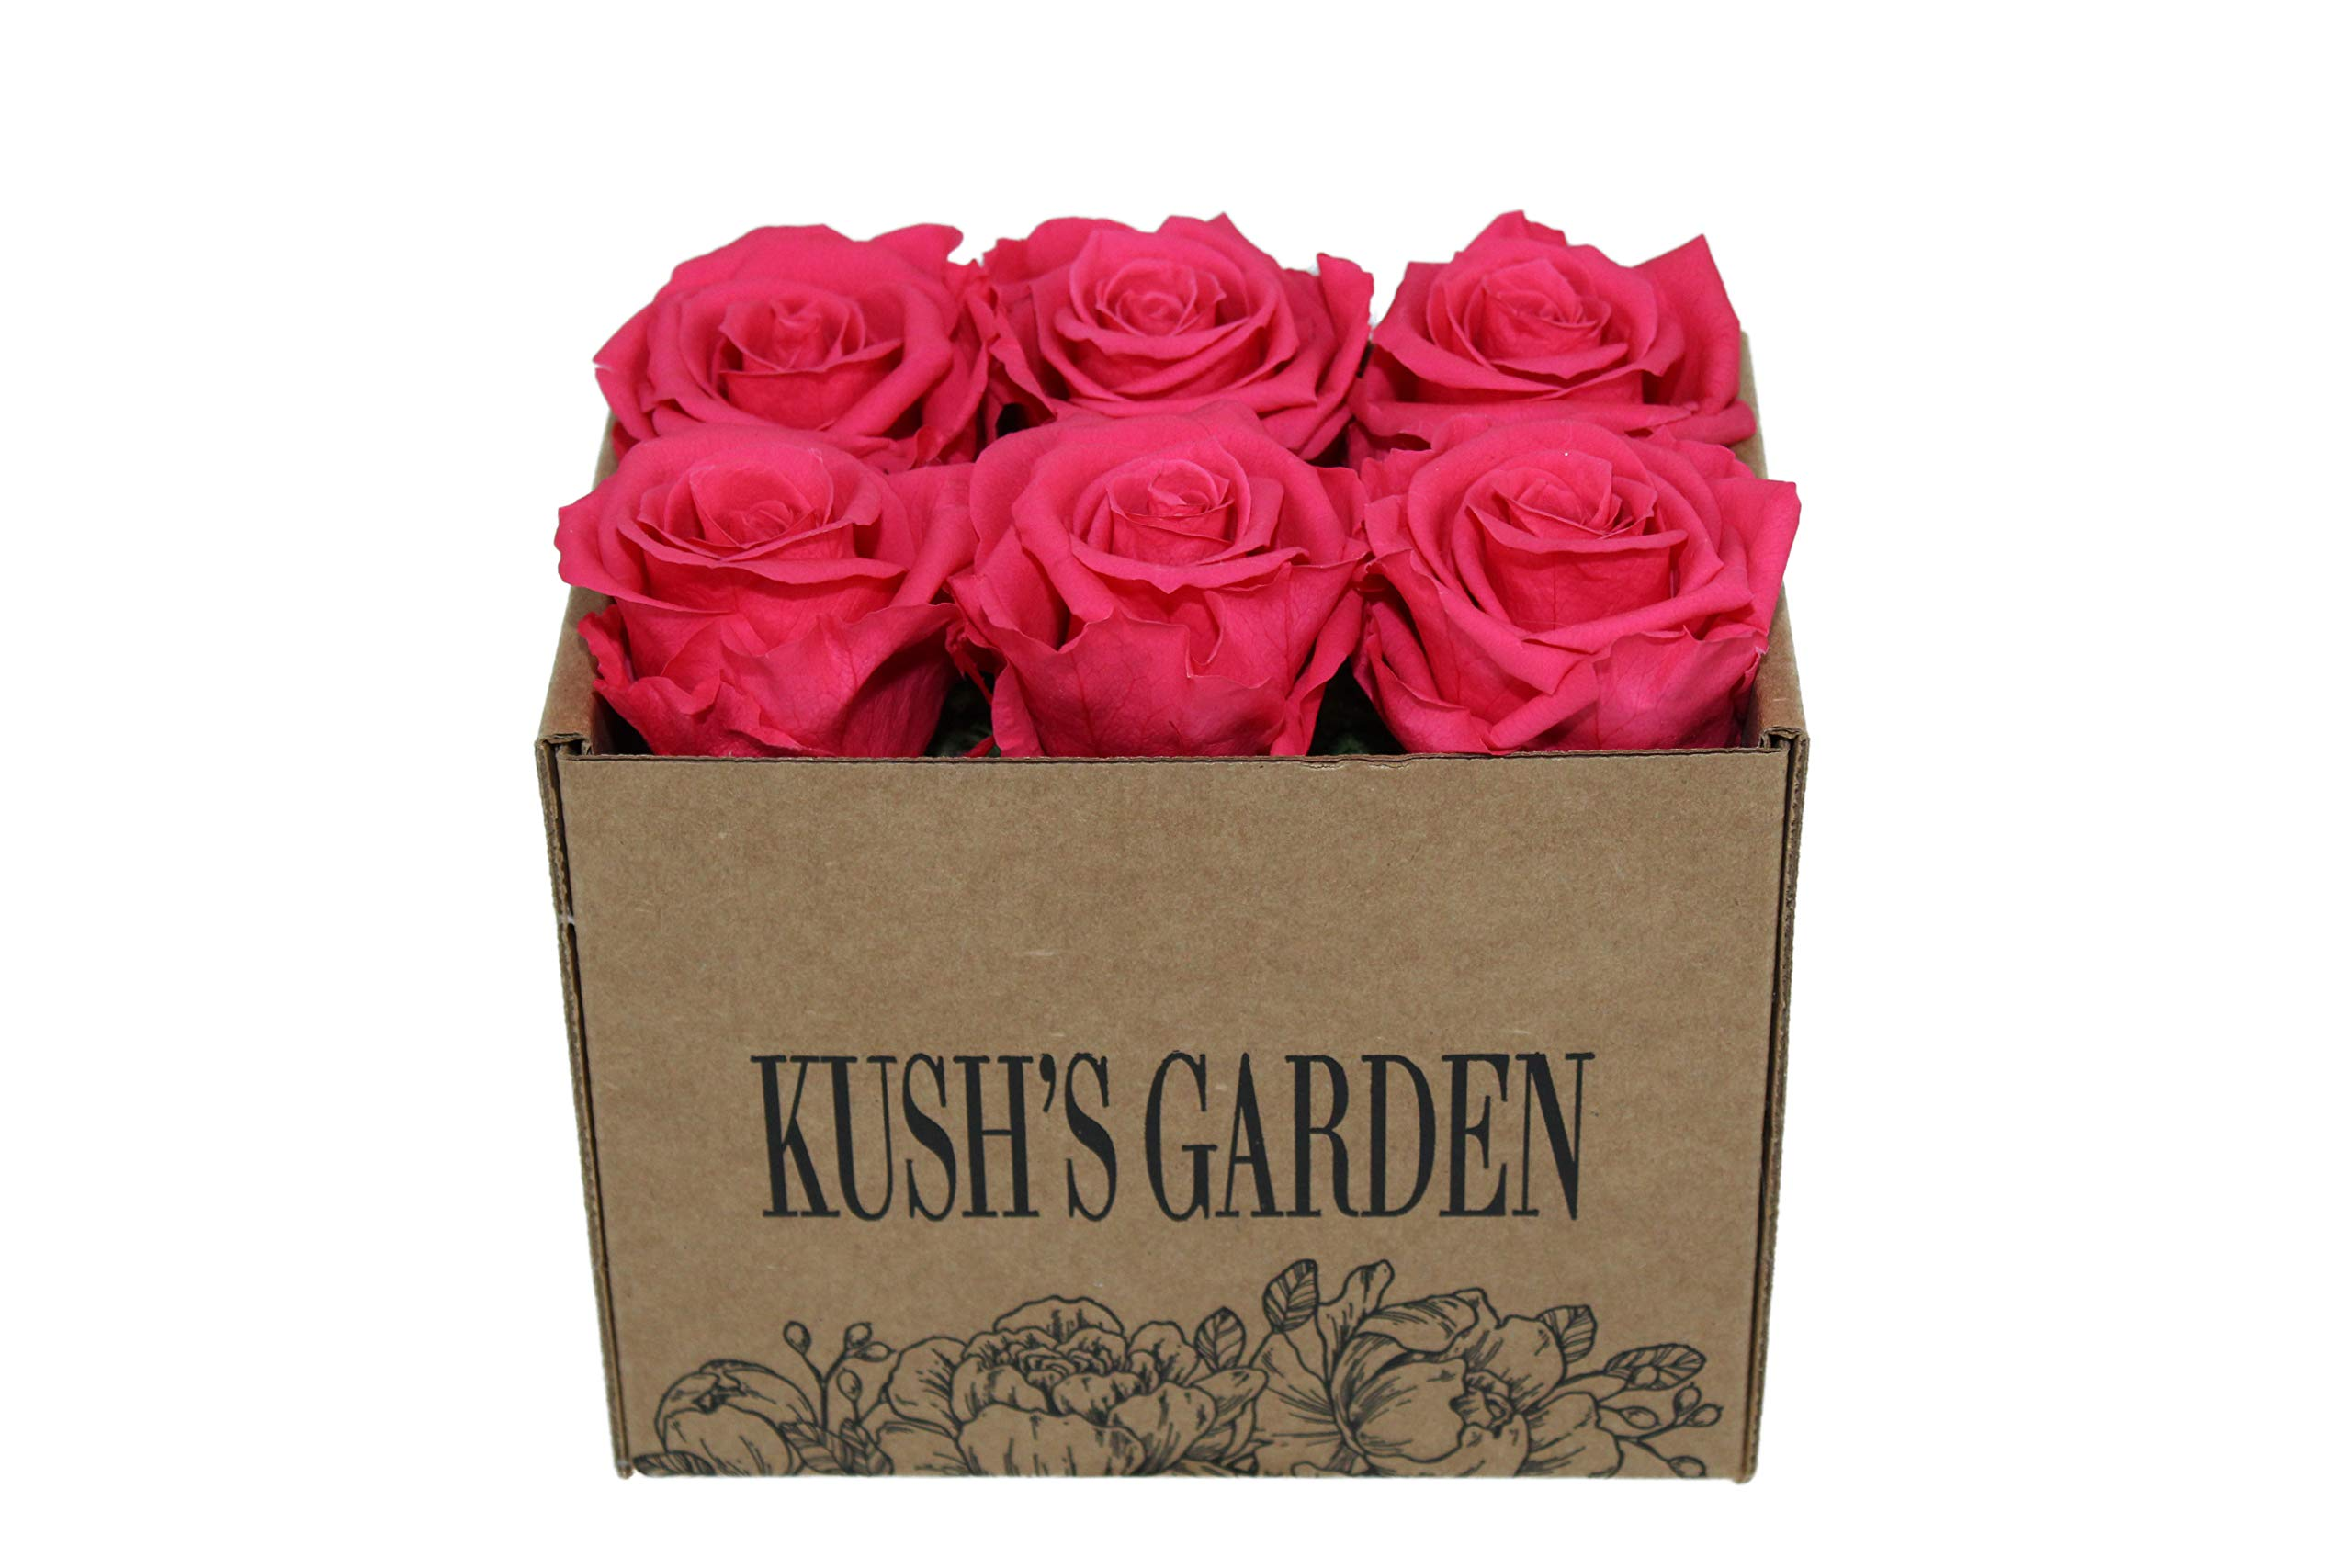 KUSHS GARDEN Real Preserved Roses in Box (Spicy Hot Pink) by KUSHS GARDEN